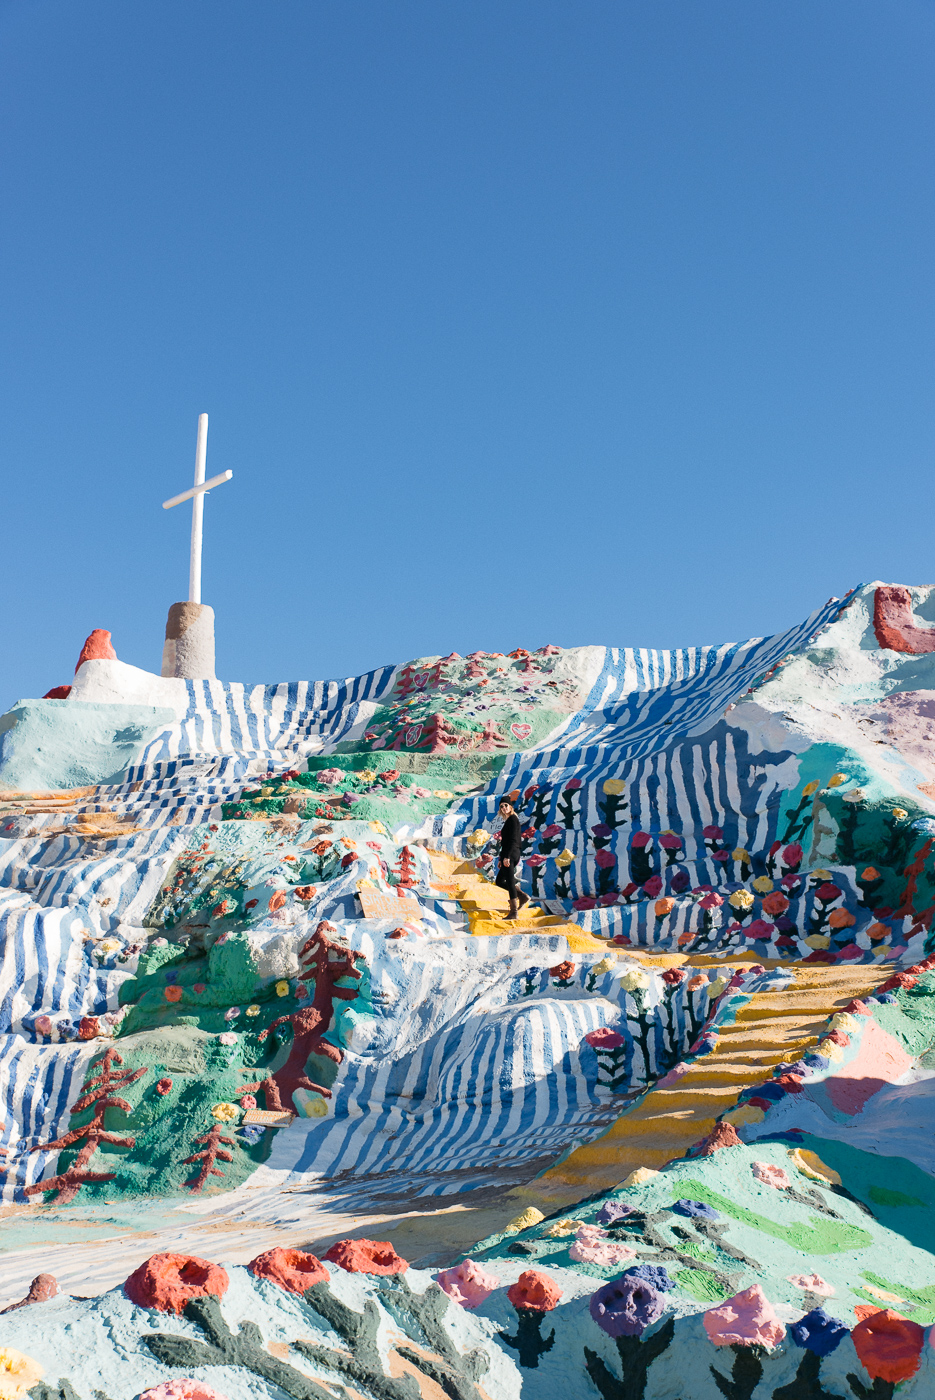 salvation mountain california arizona slab city salton sea vsco nikon america yall pawlowski americayall cross